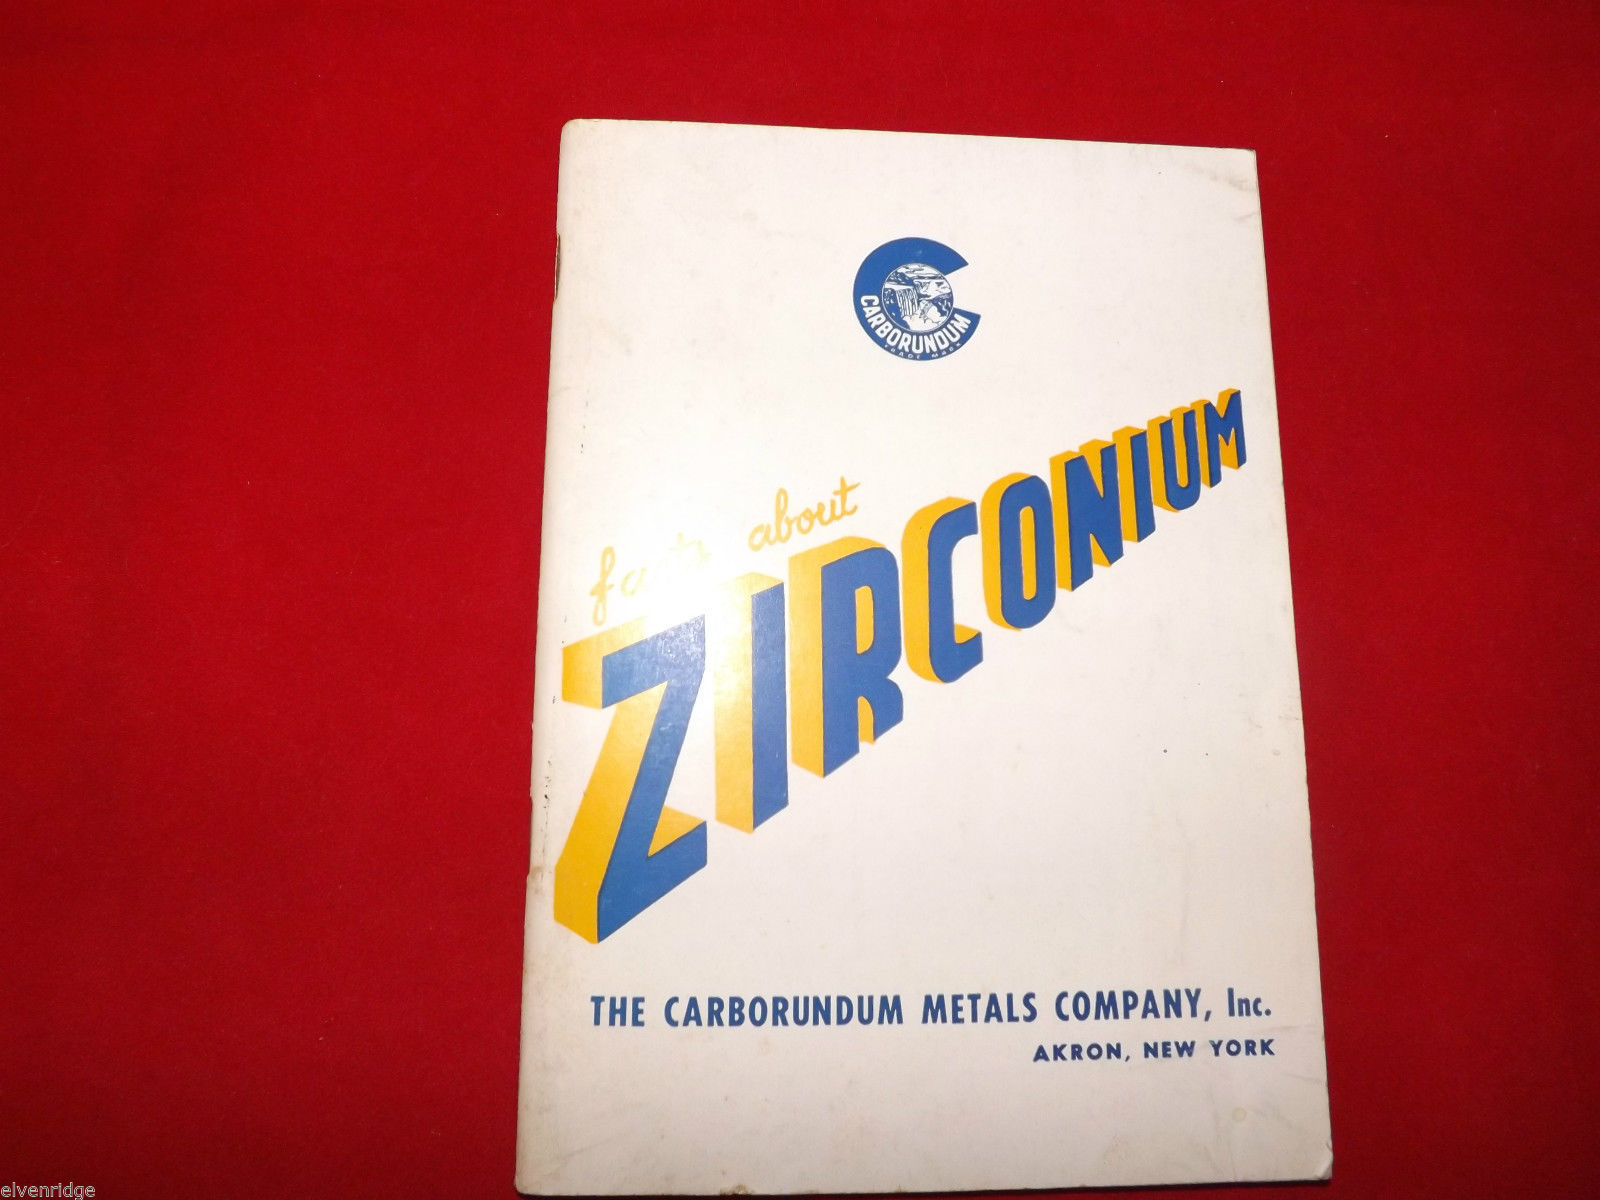 Facts About Zirconium Booklet Carborundum Metals Company